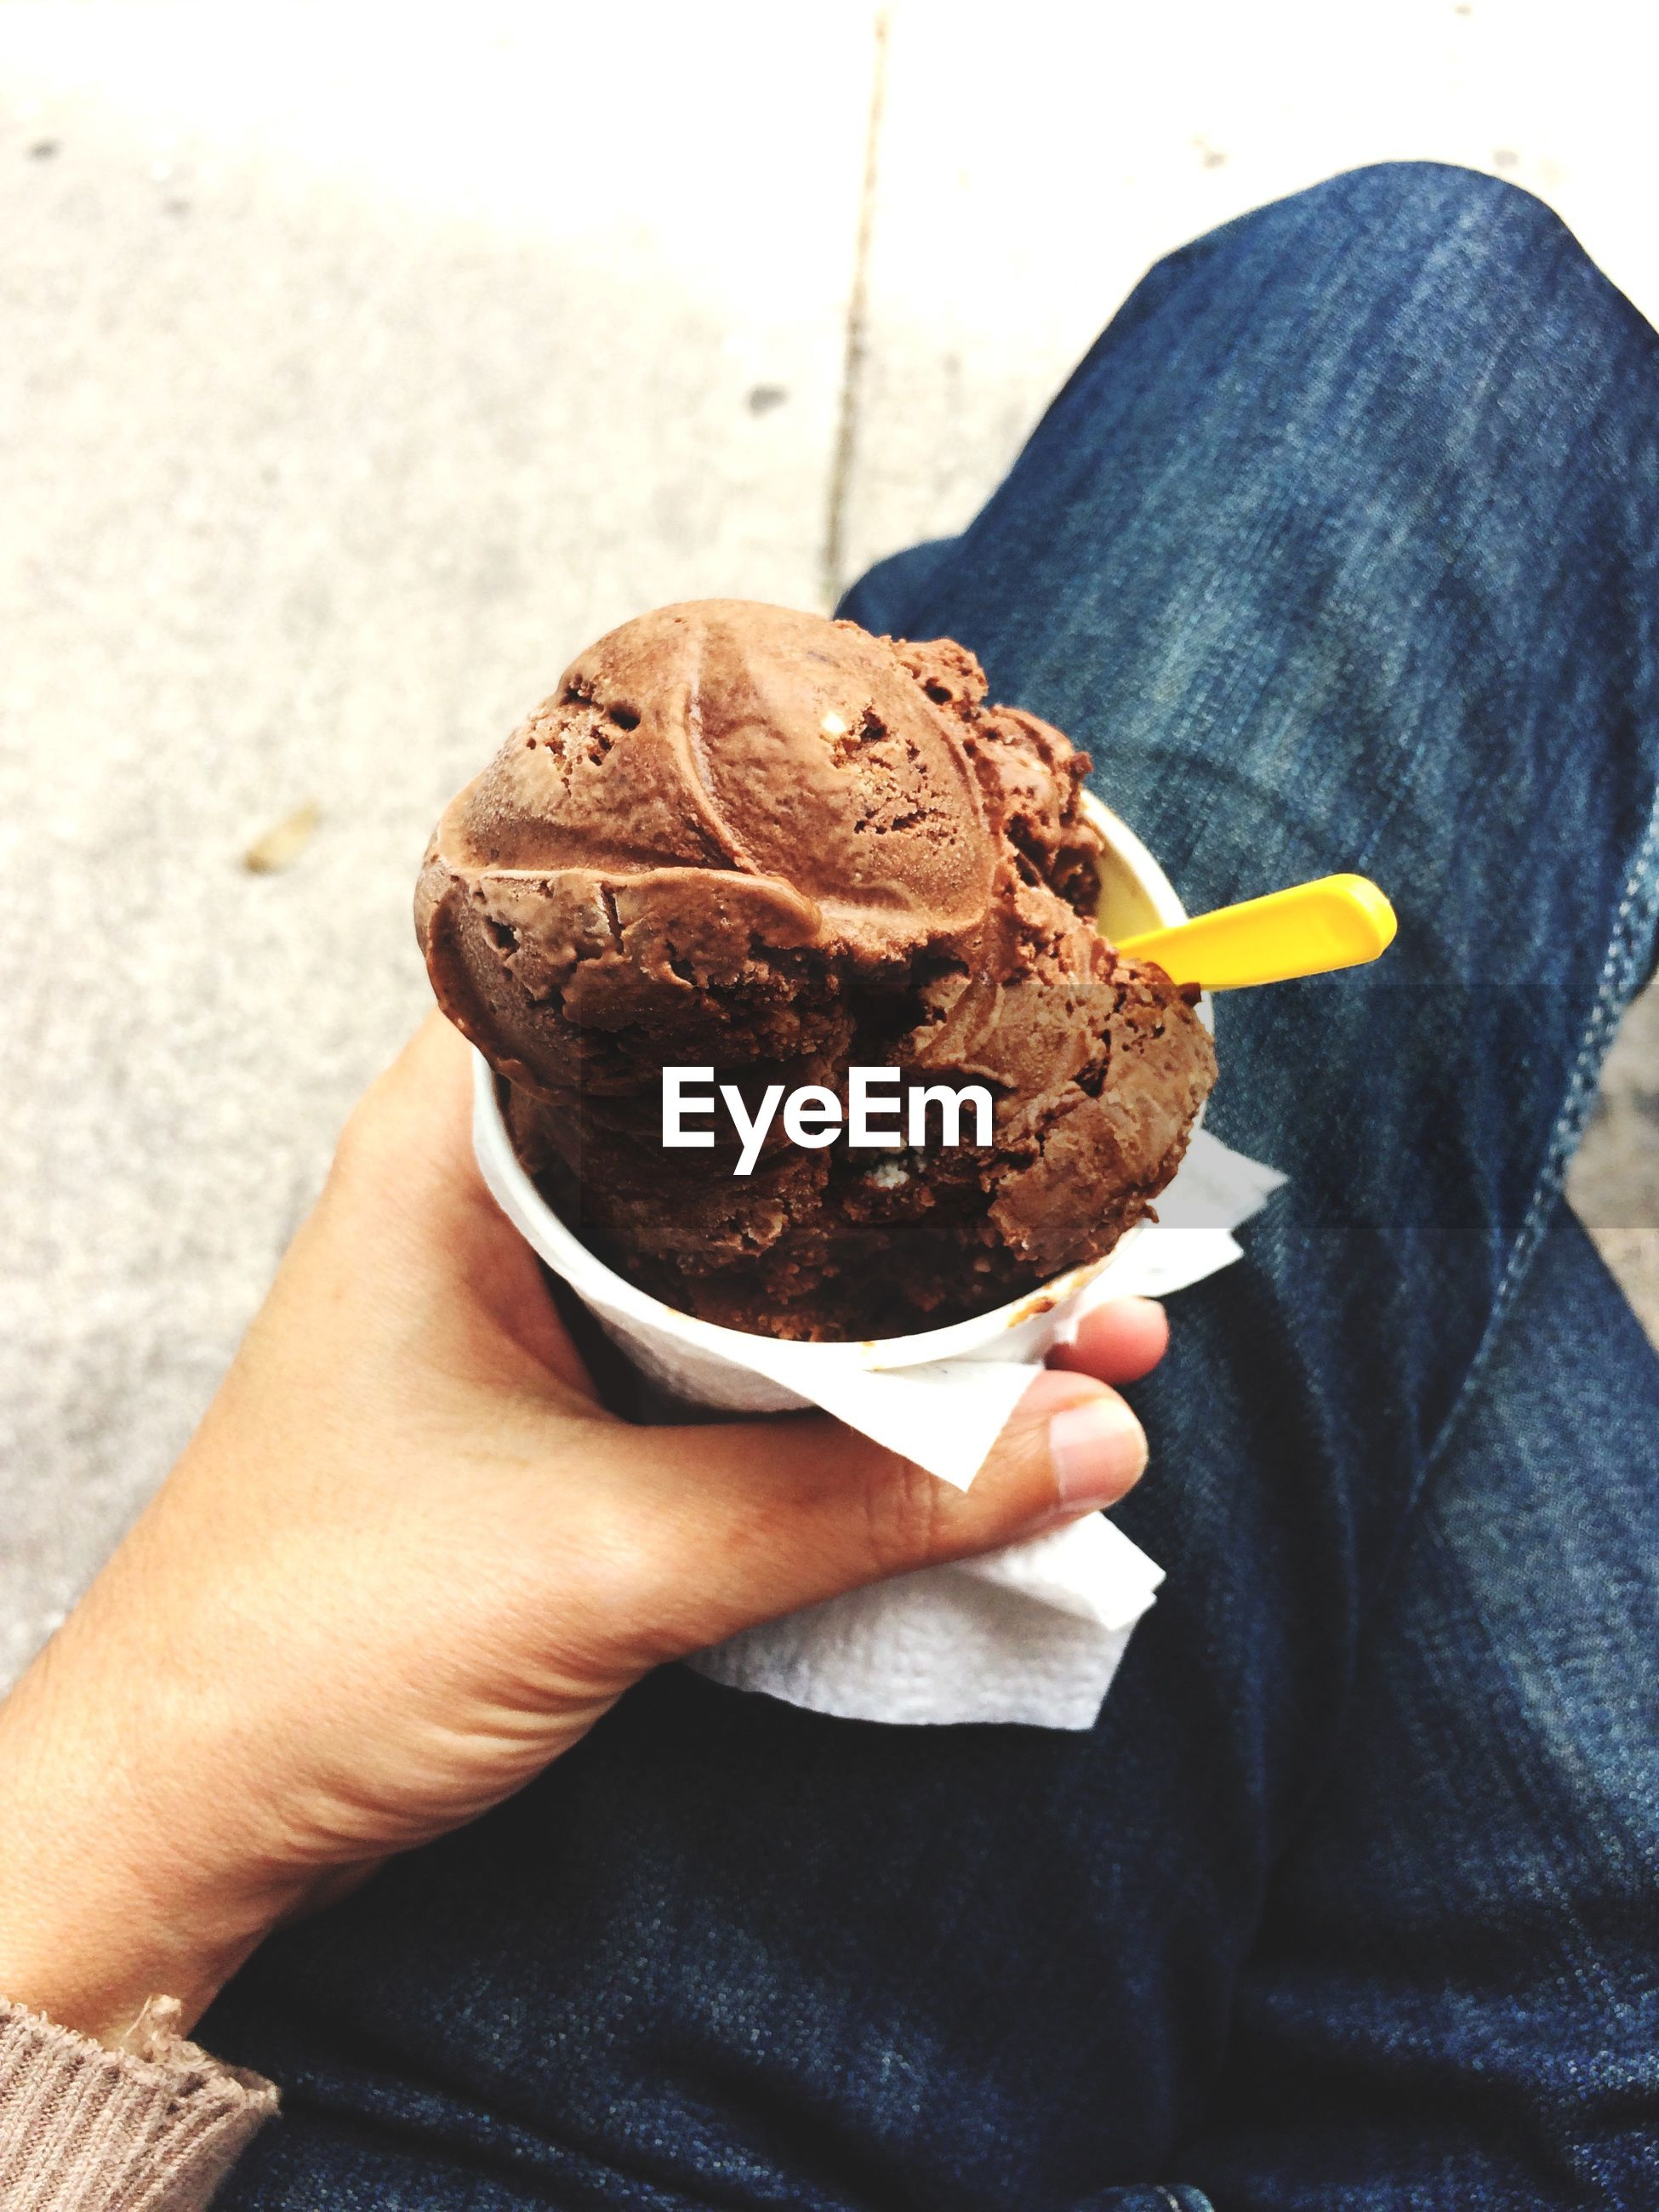 Midsection of person holding ice cream